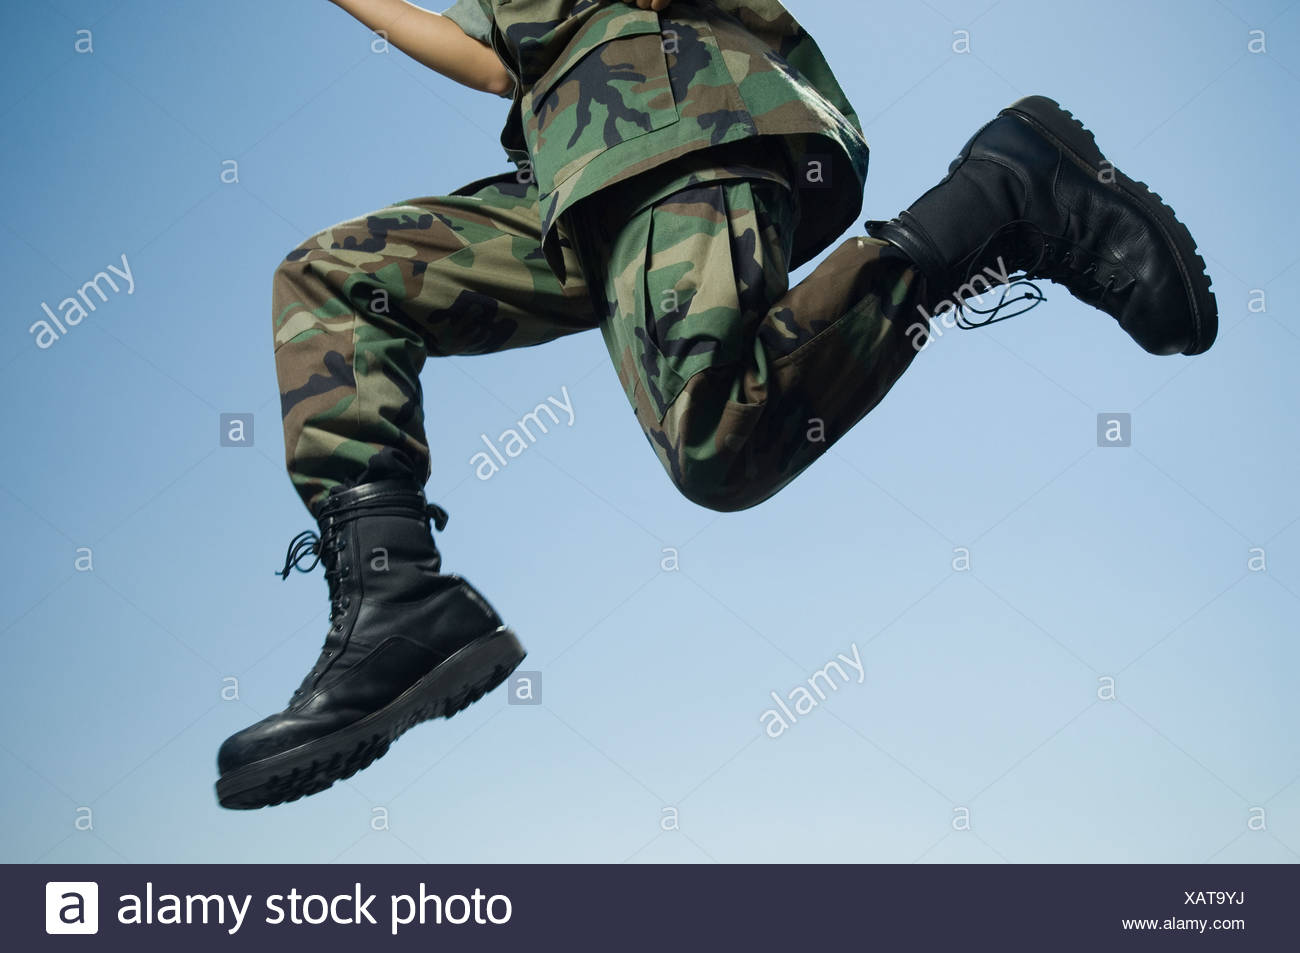 Army soldier jumping - Stock Image